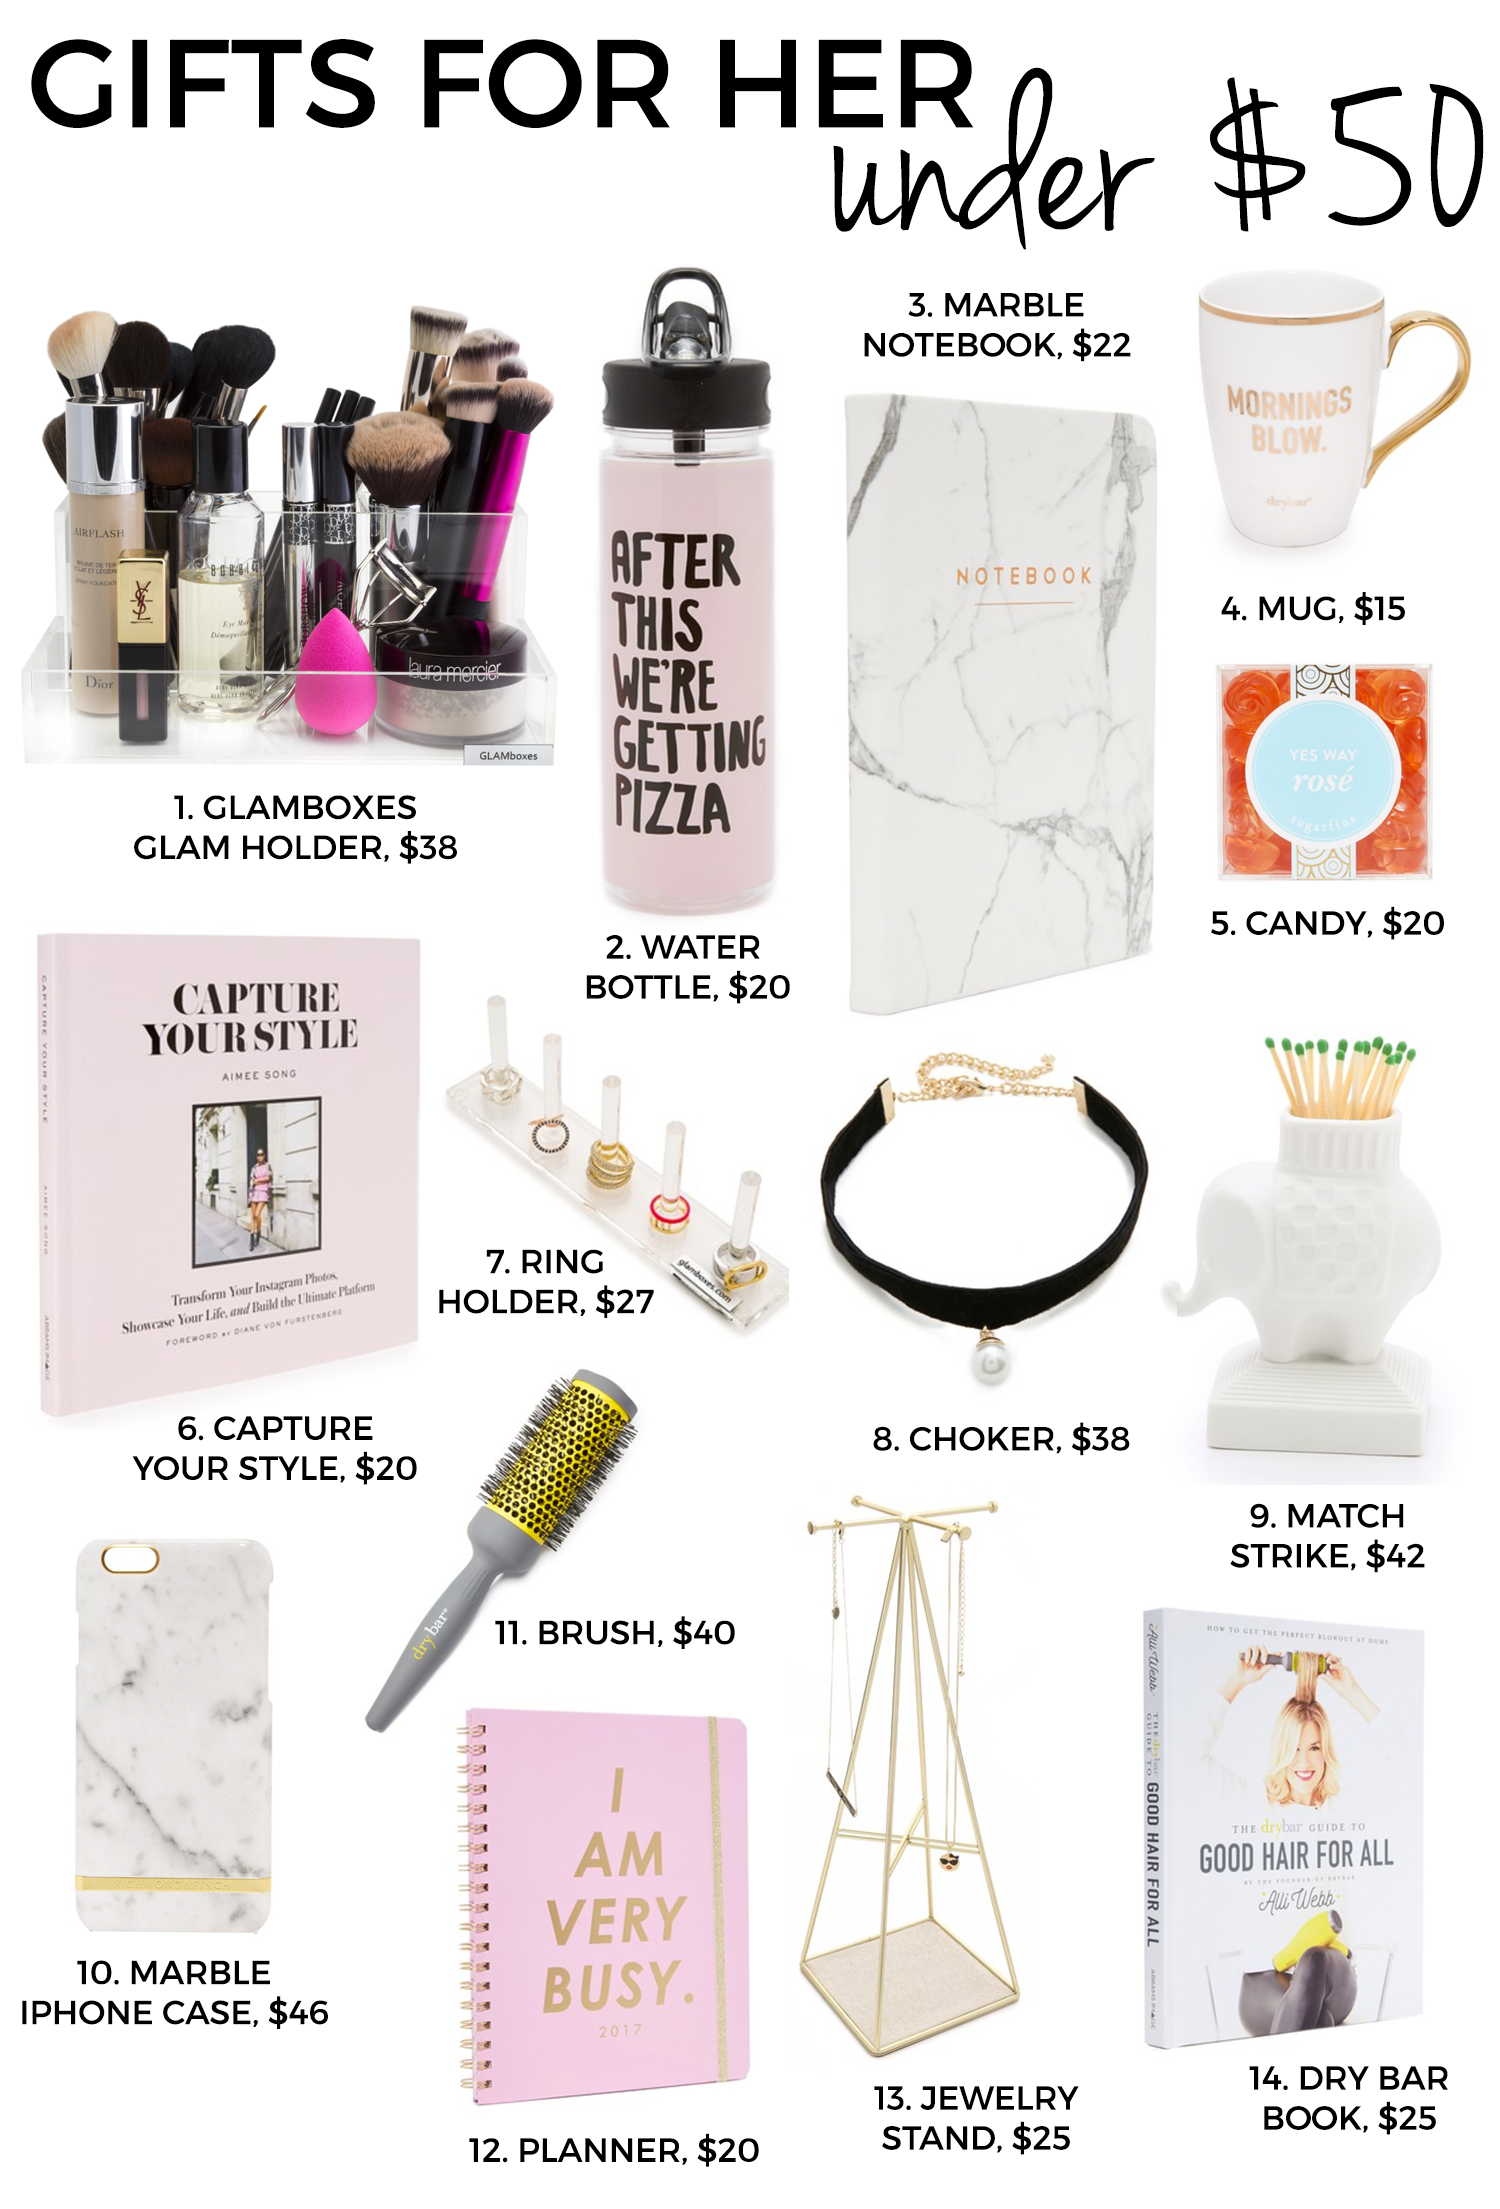 Holiday Gift Ideas: For Her Under $50 | Holiday Gift Ideas ...